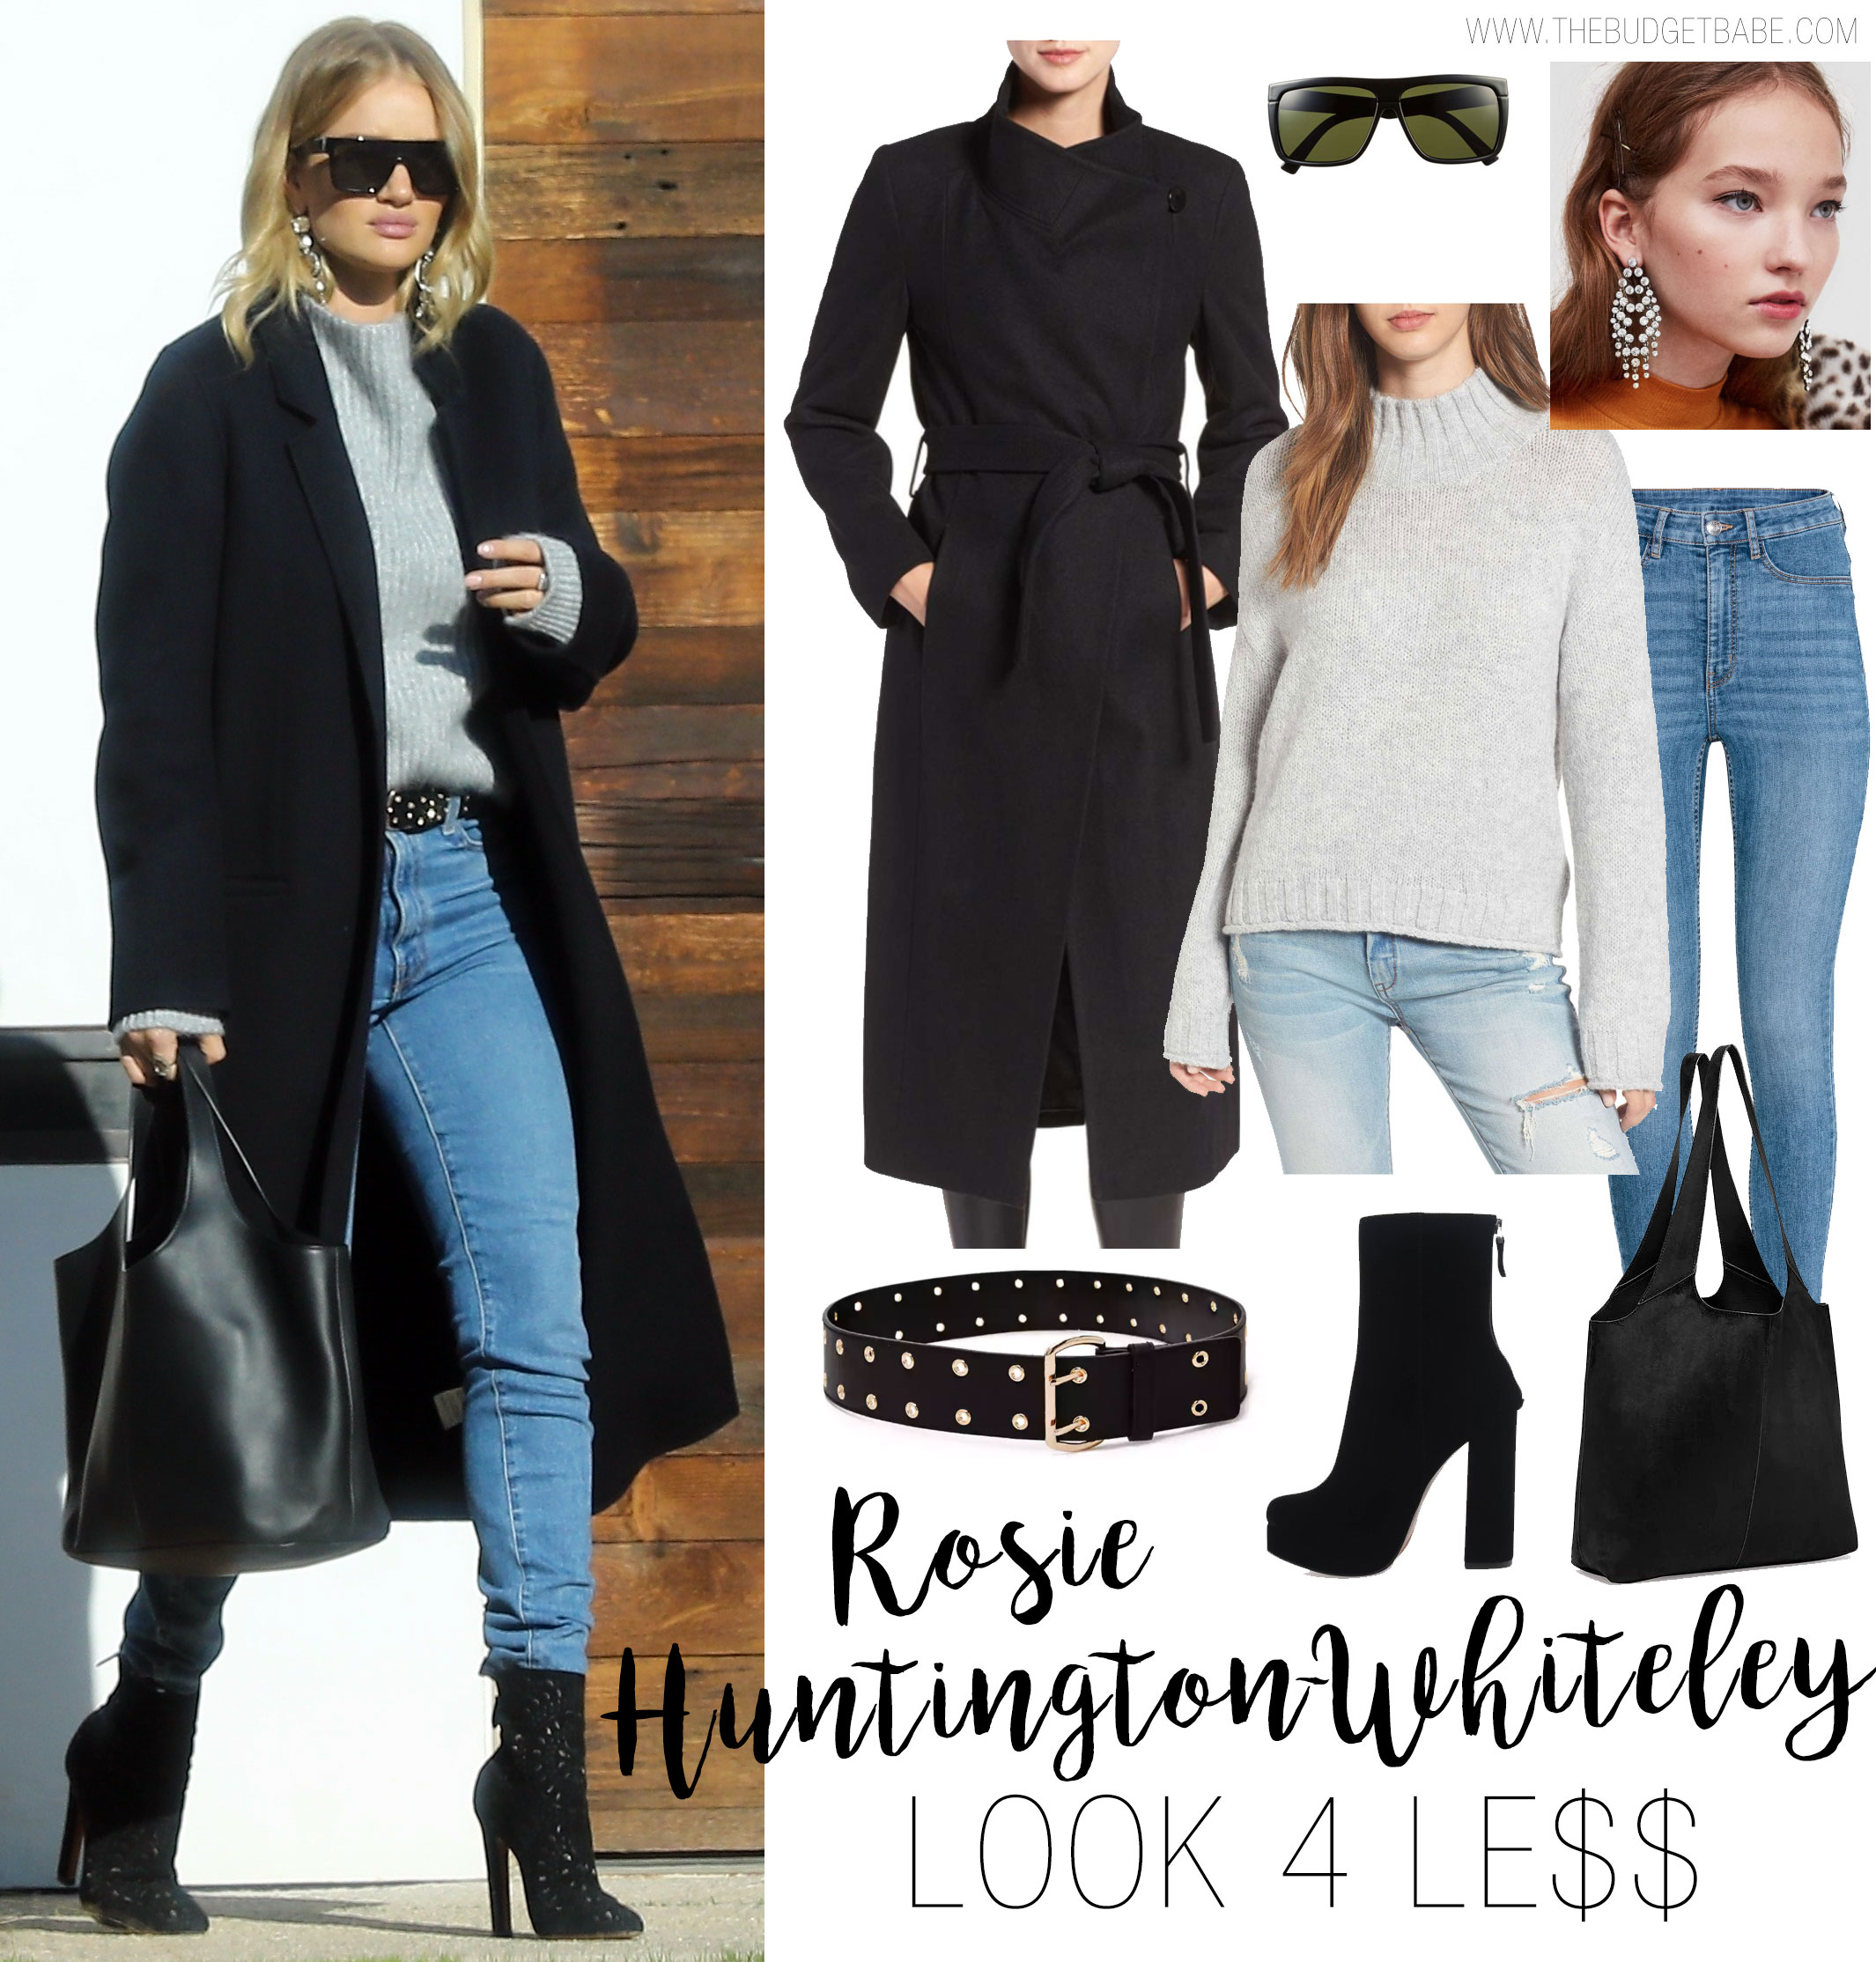 Rosie Huntington-Whiteley's black wool coat, grey sweater, skinny jeans and ankle boots celebrity look for less outfit idea